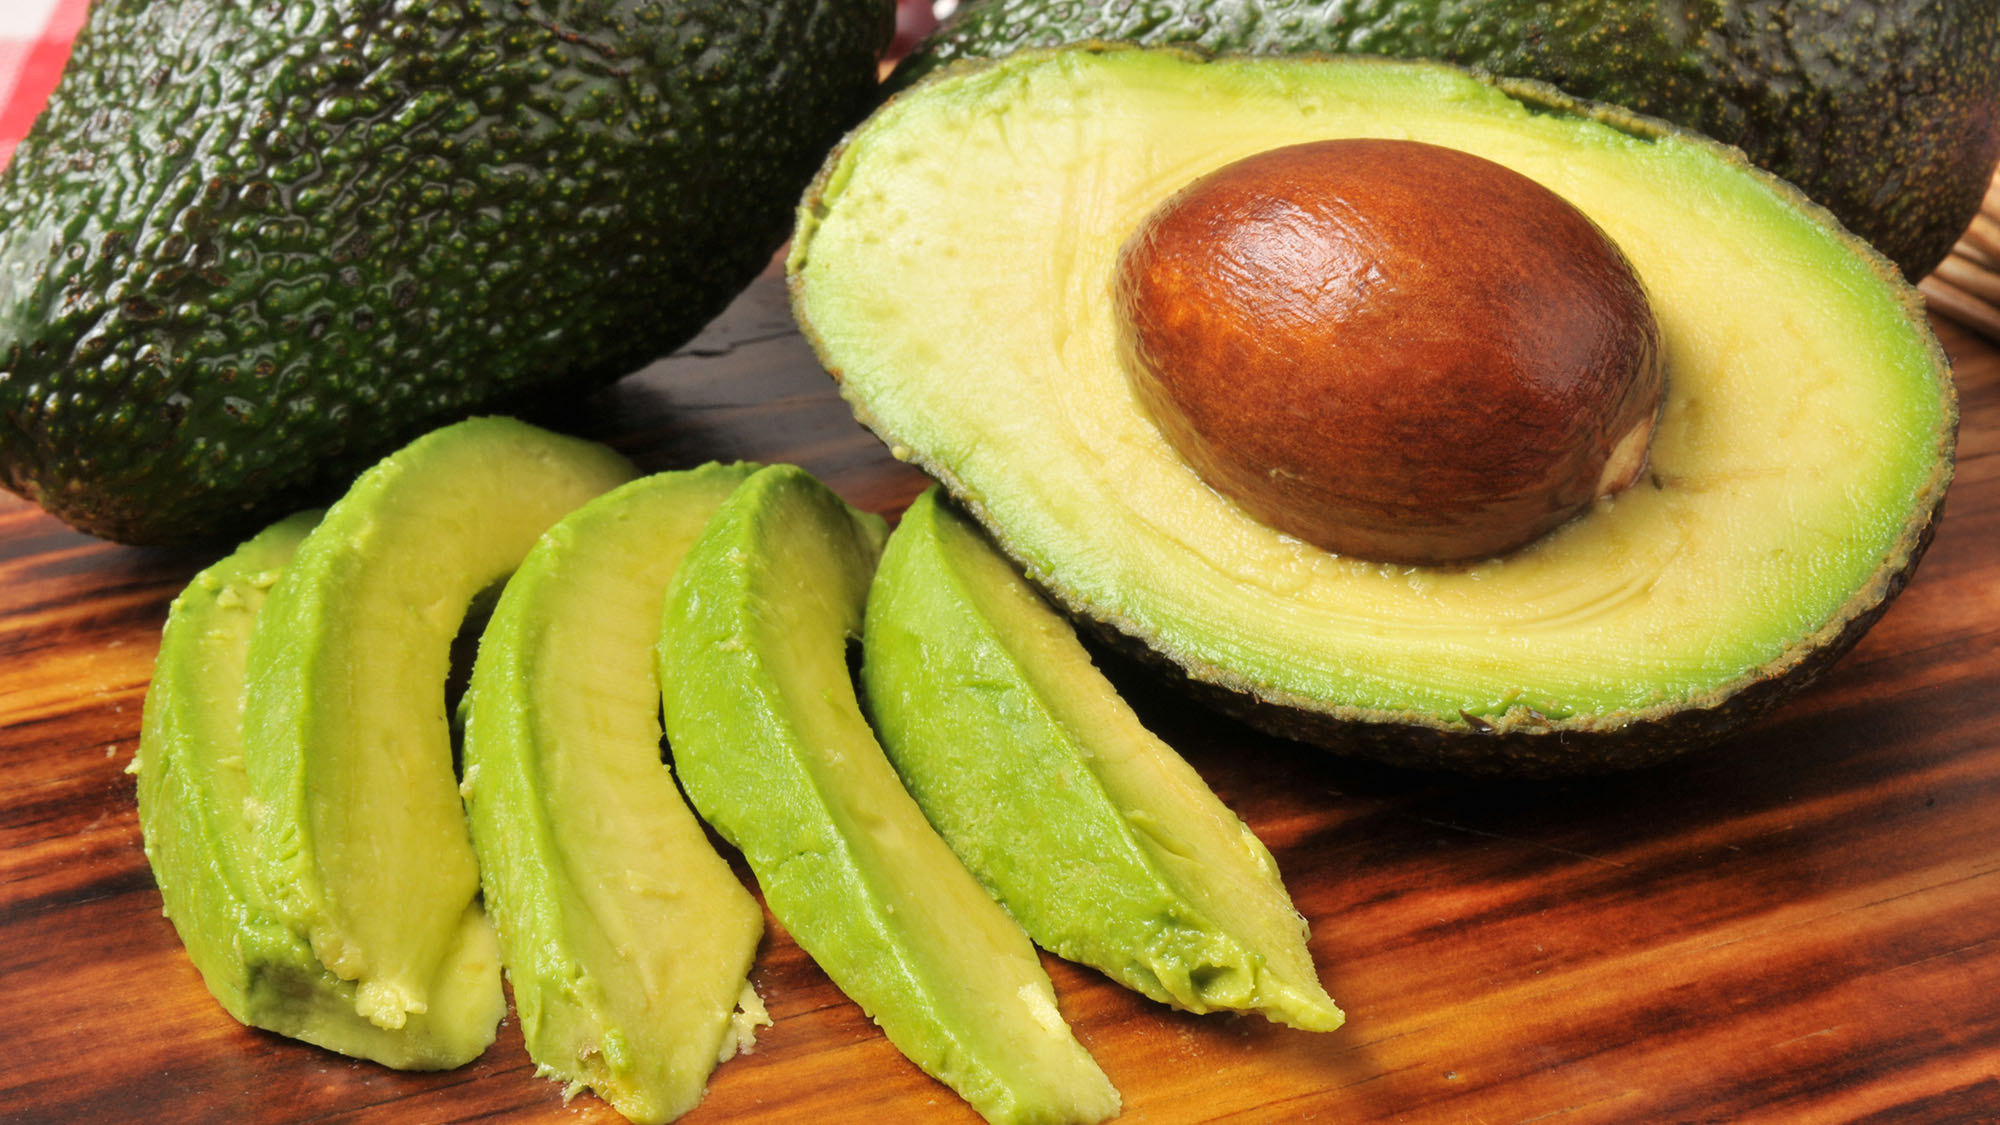 Are avocados in danger of being wiped out?